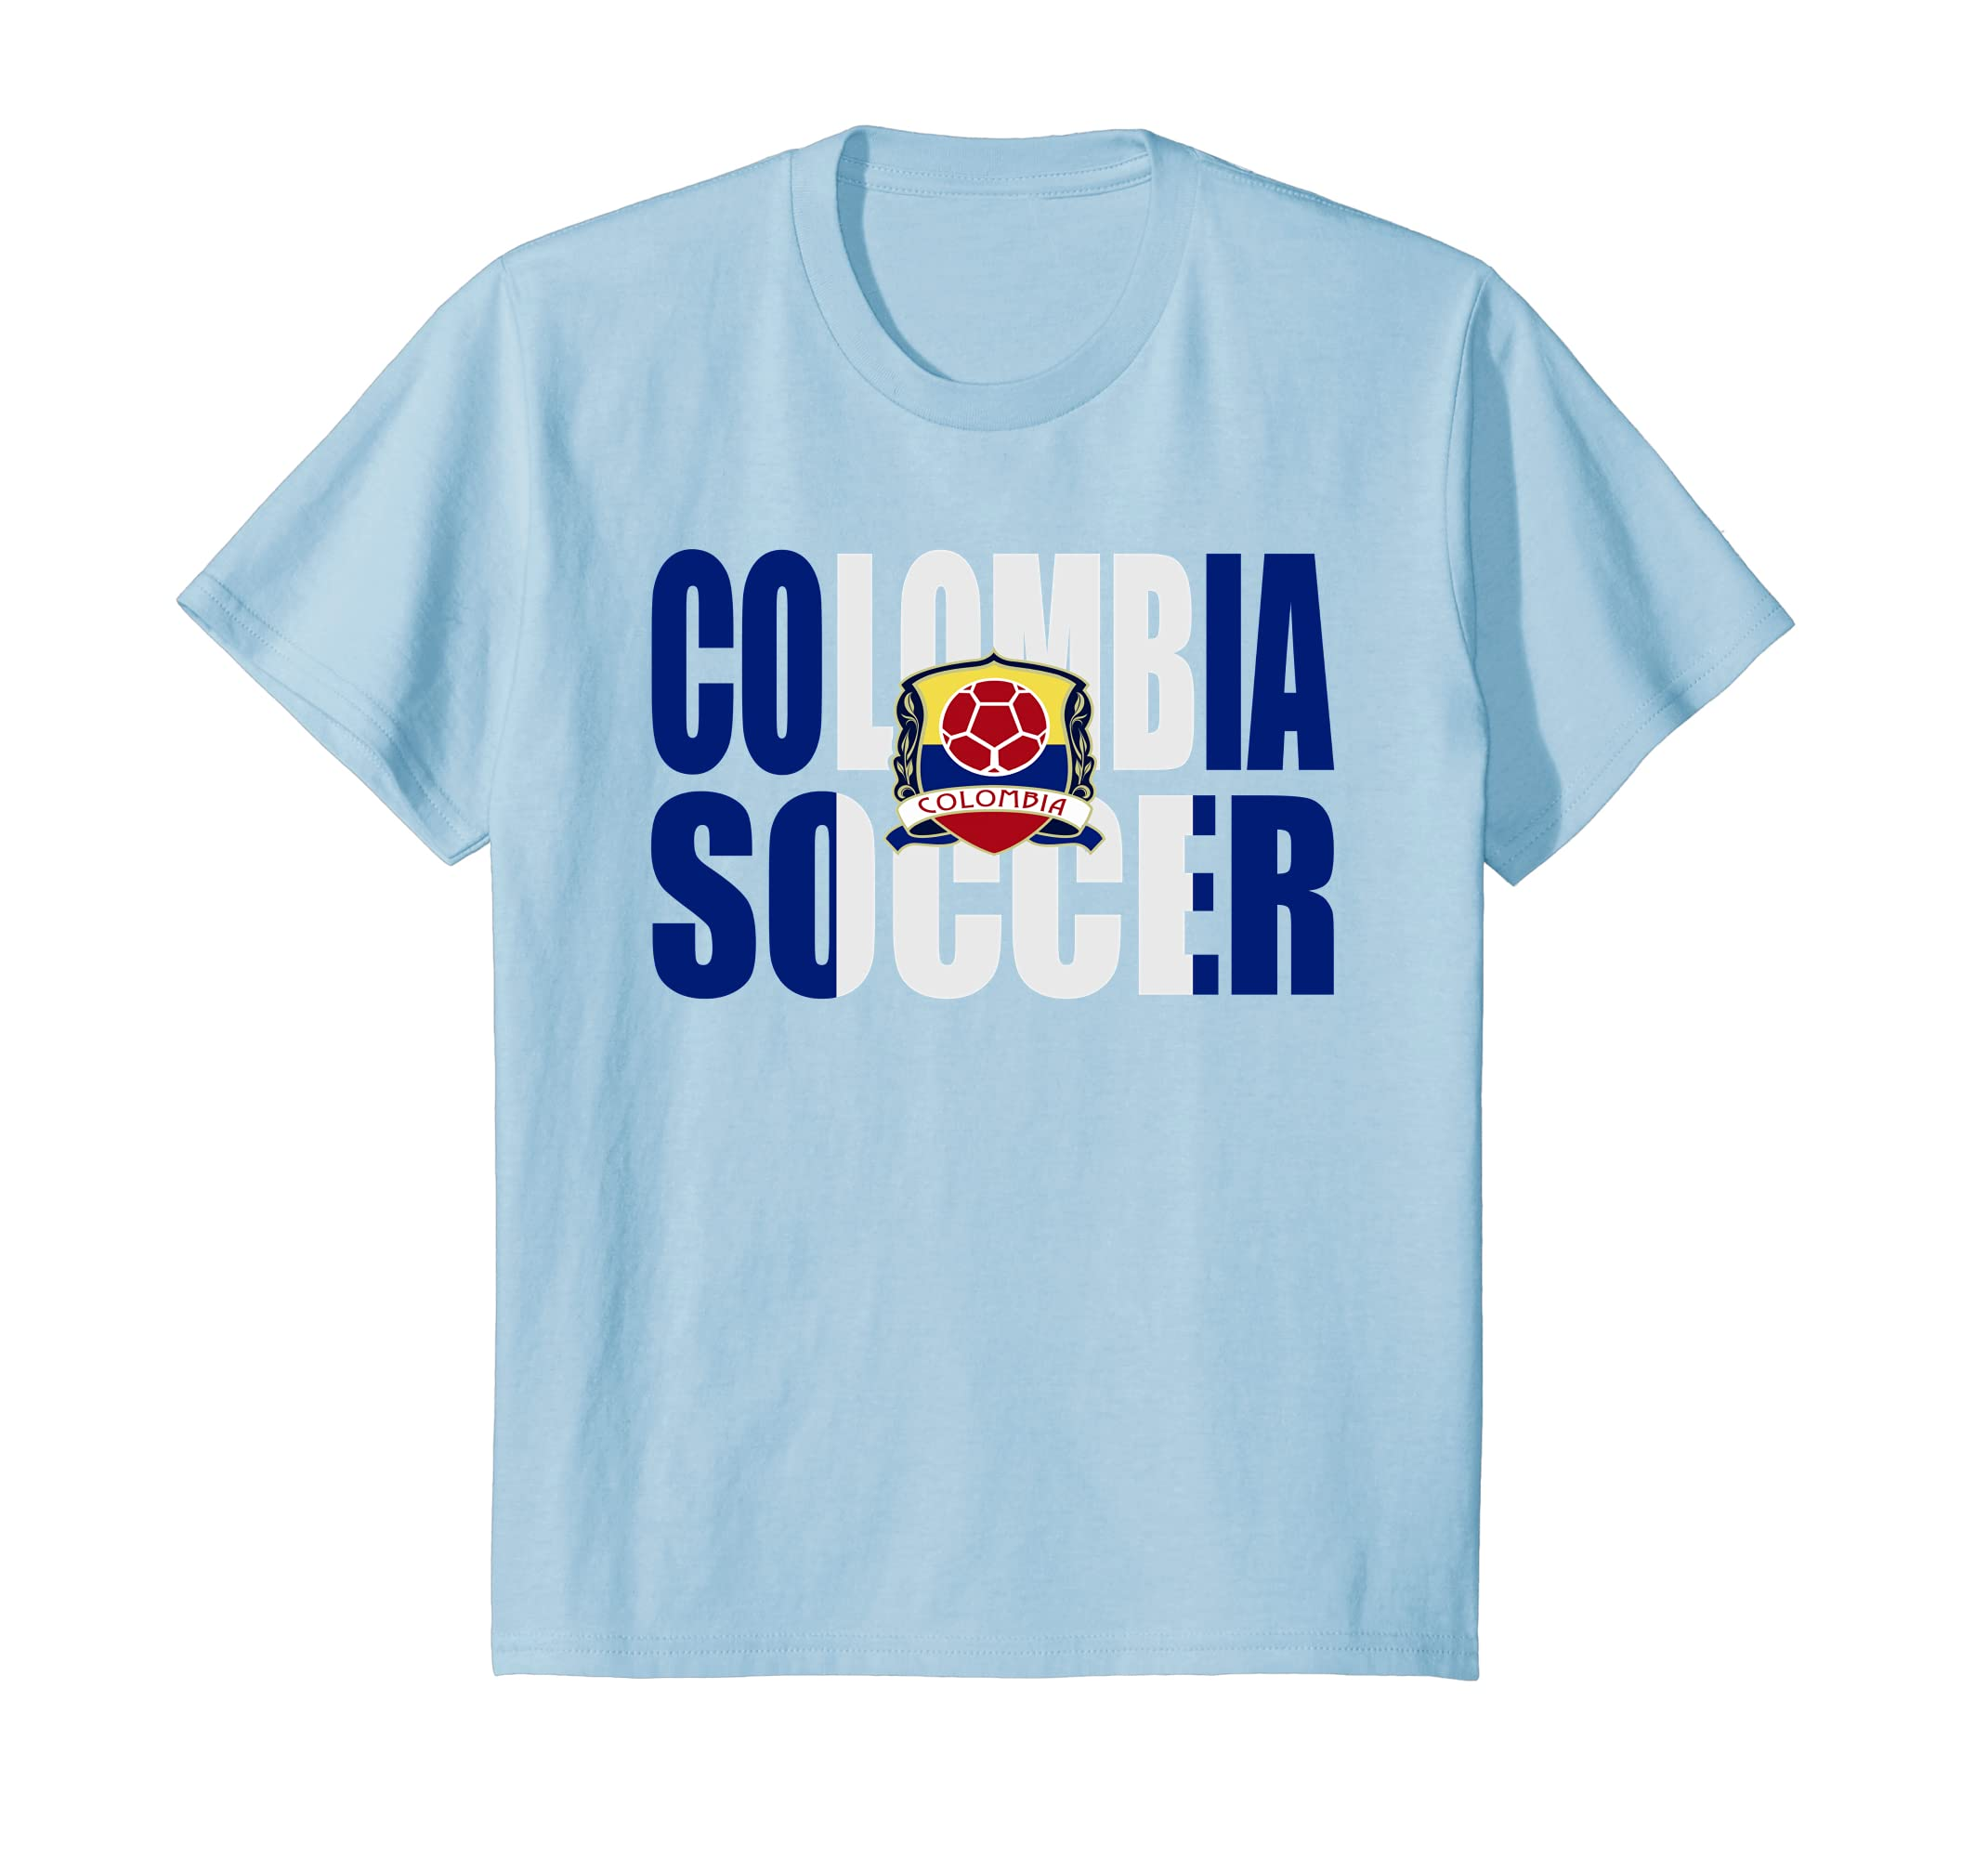 Amazon.com: Colombian Soccer Shirts - Amo el Futbol Colombiano Camiseta: Clothing